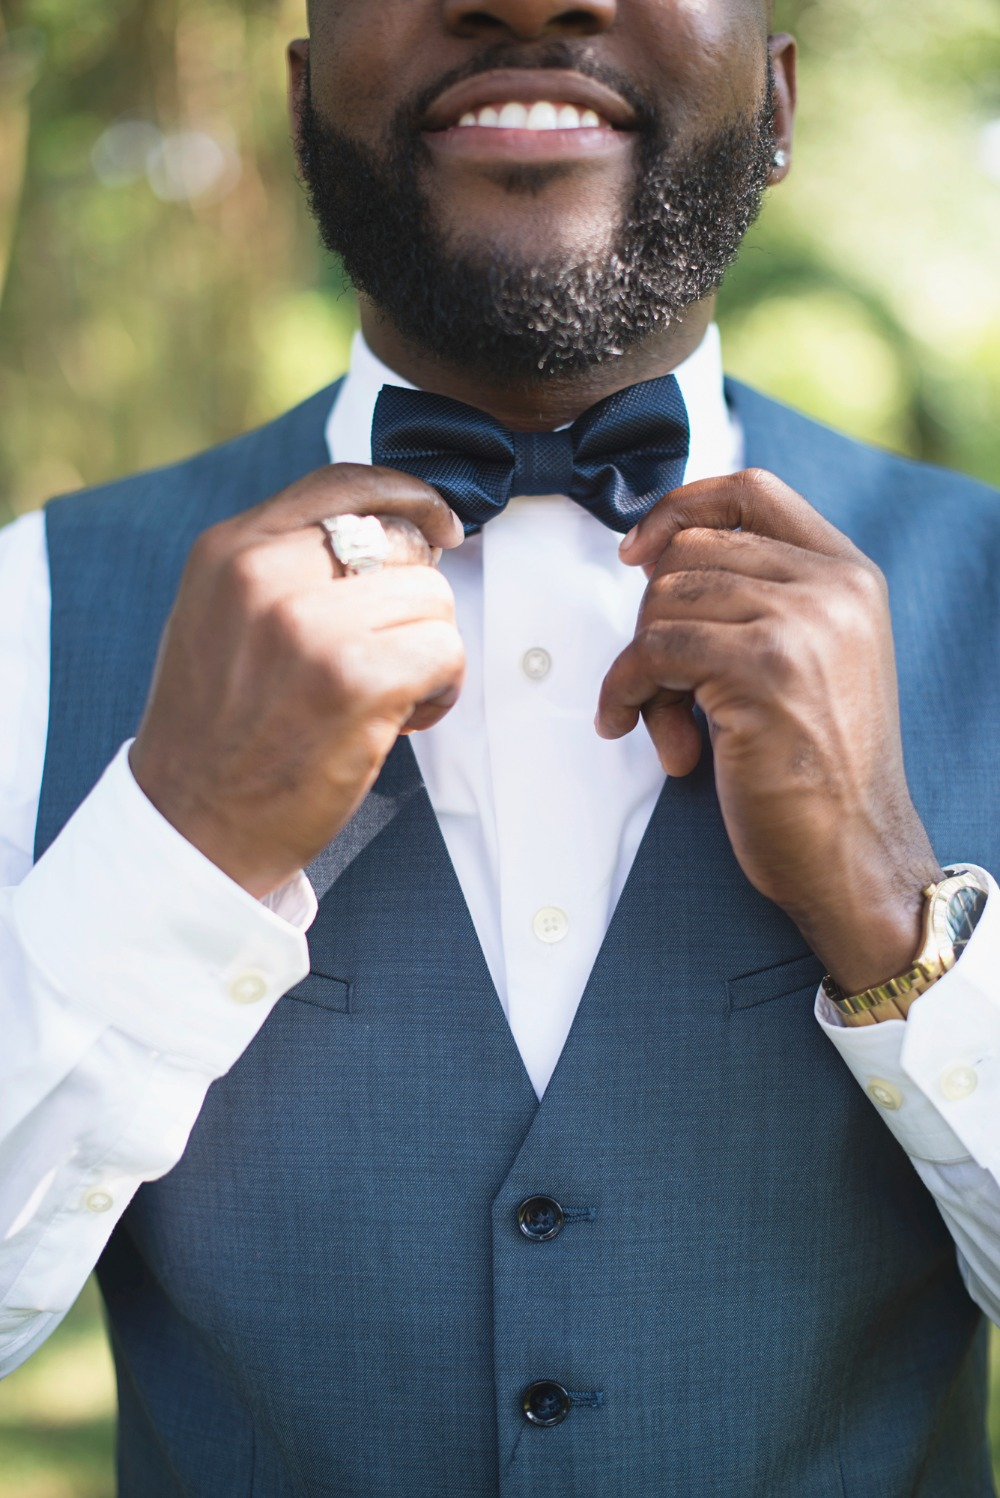 Dapper groom and bow tie